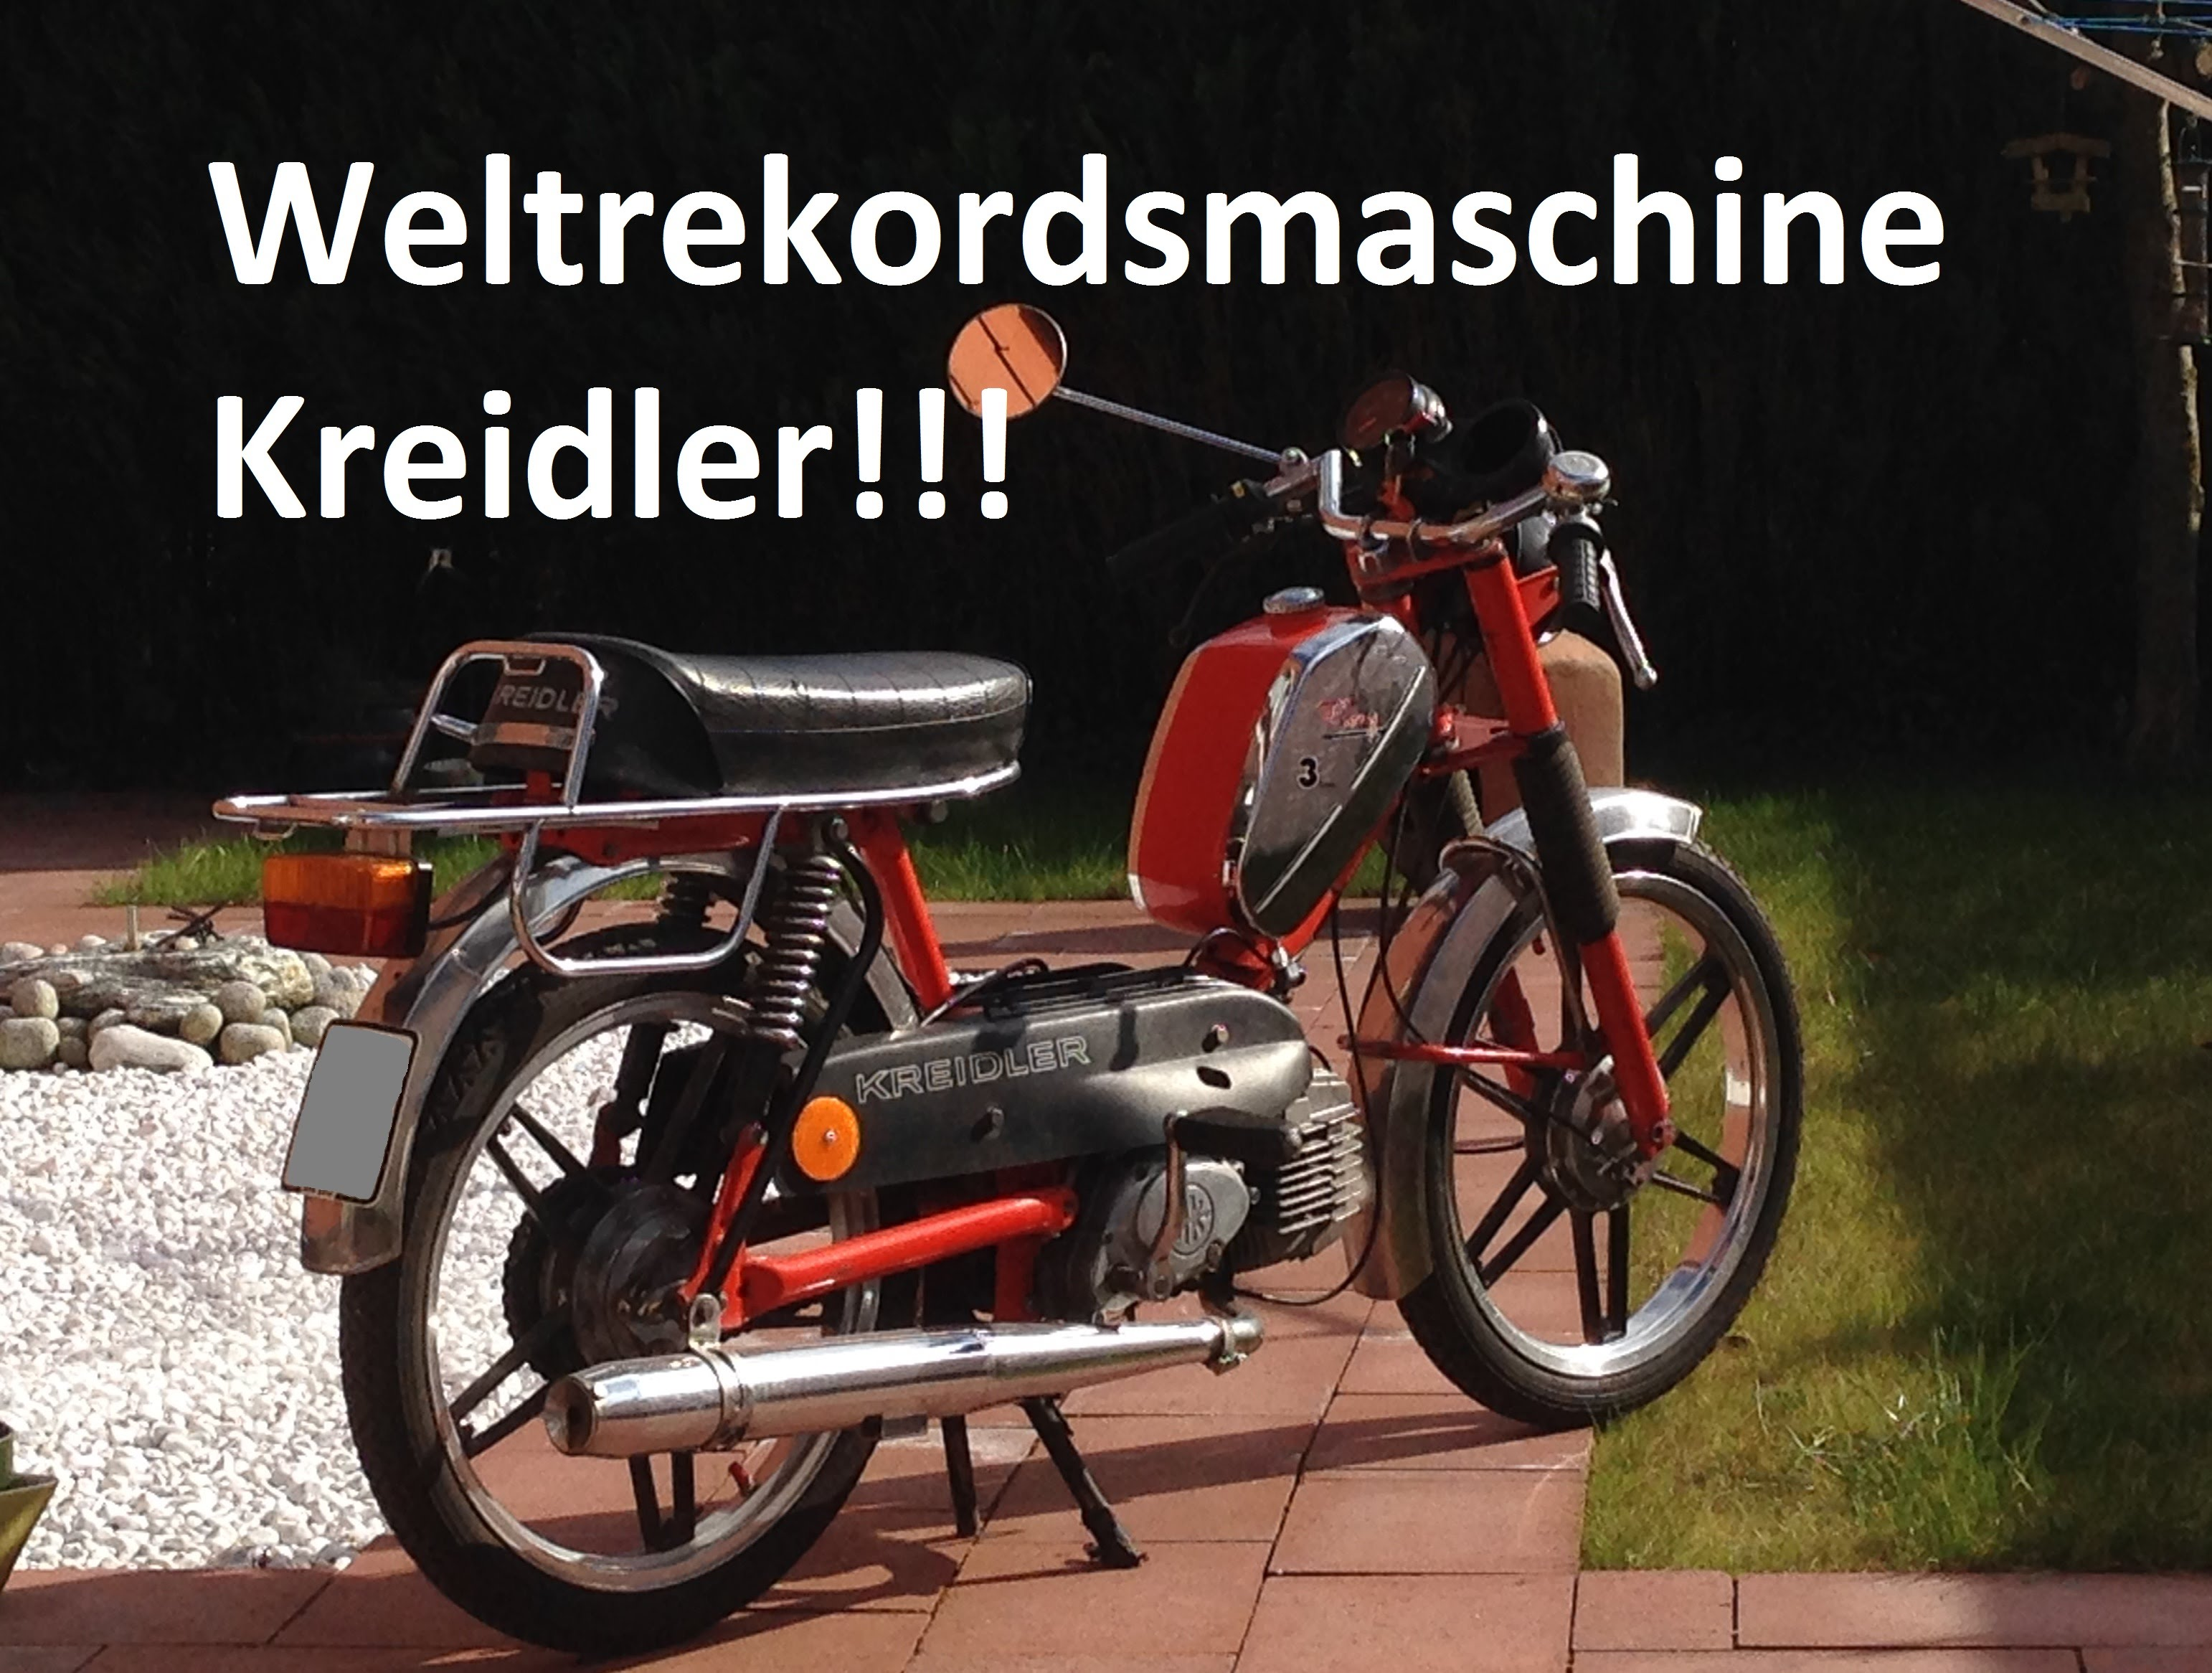 Kreidler flory photo - 7